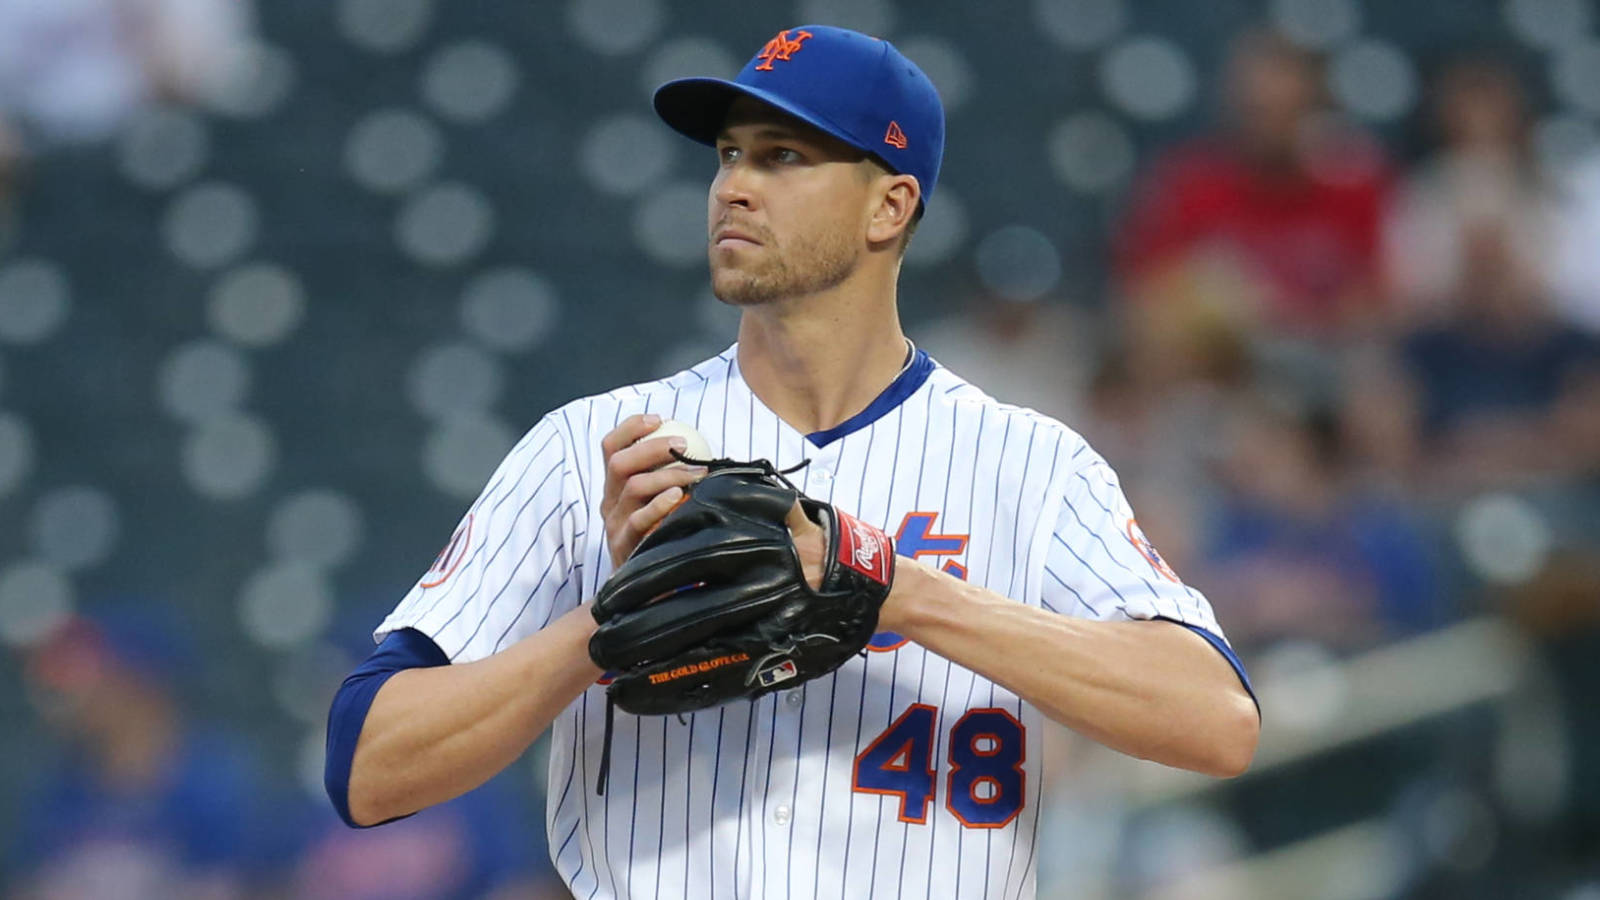 Mets owner: Not the right time to renegotiate deGrom's deal